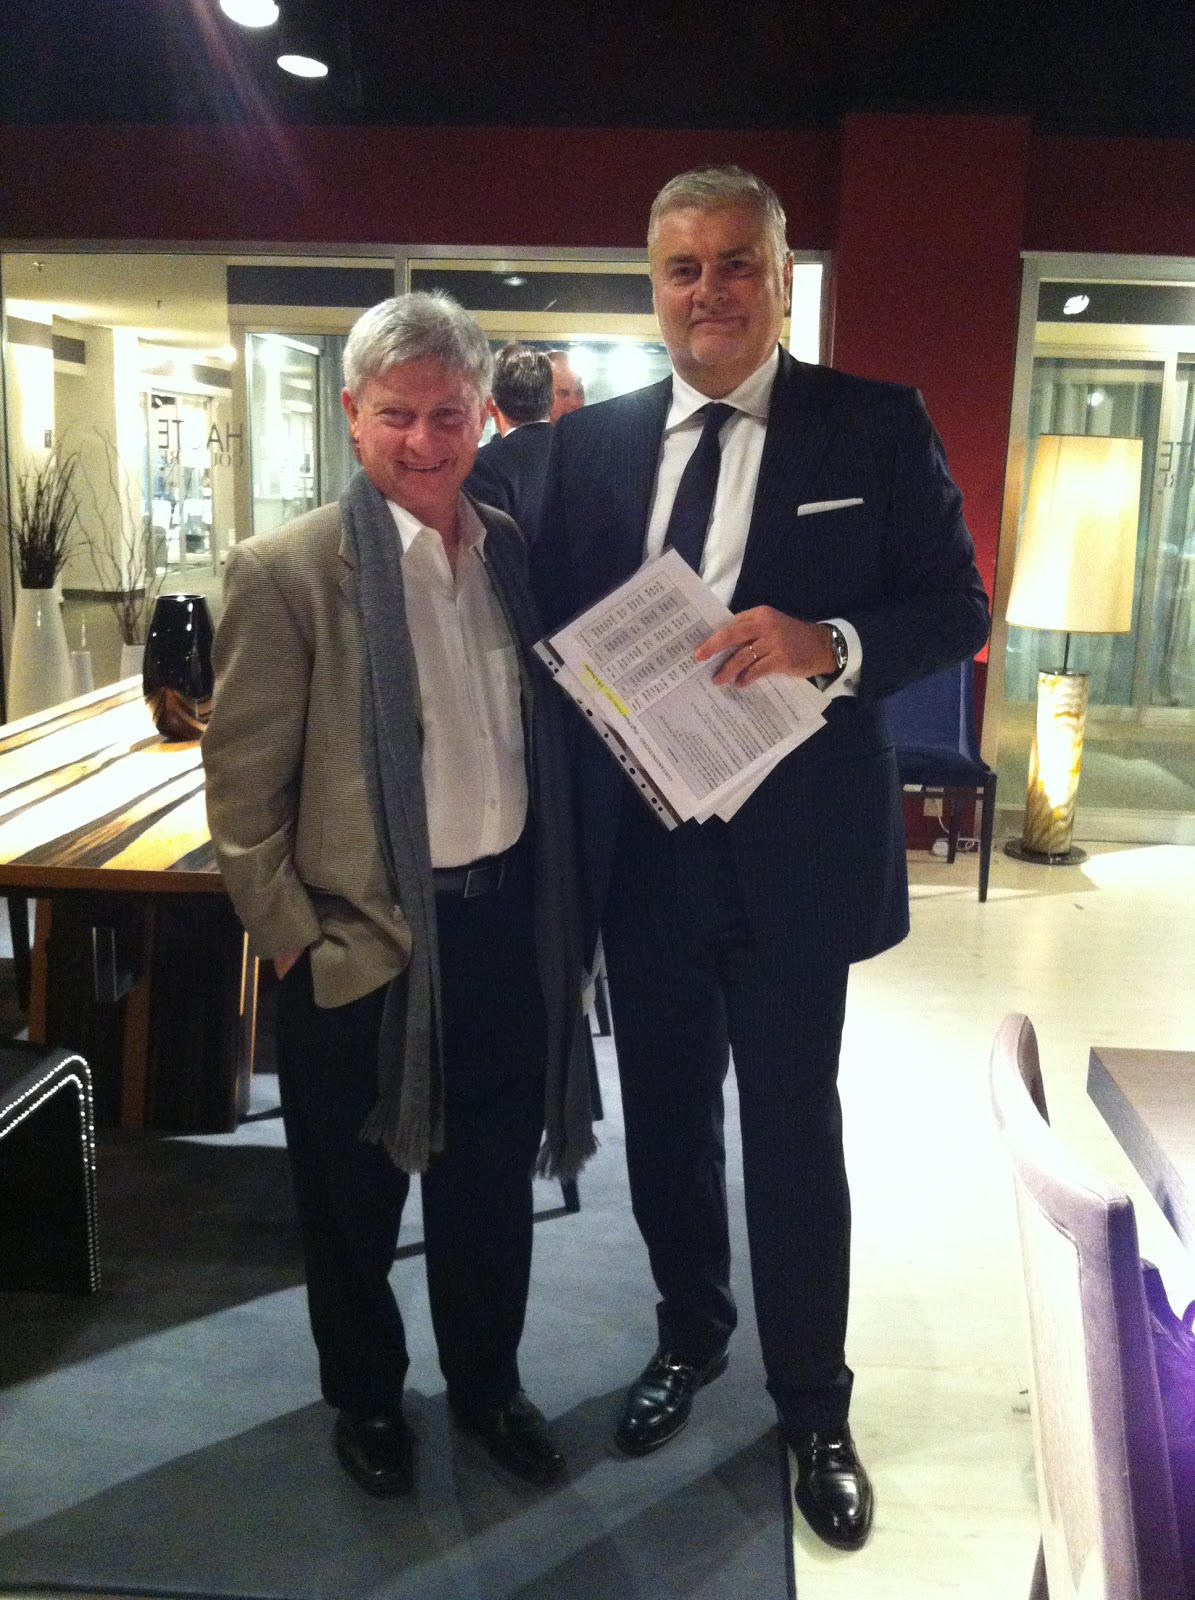 Alan Wasser And Pierpaolo Costantini